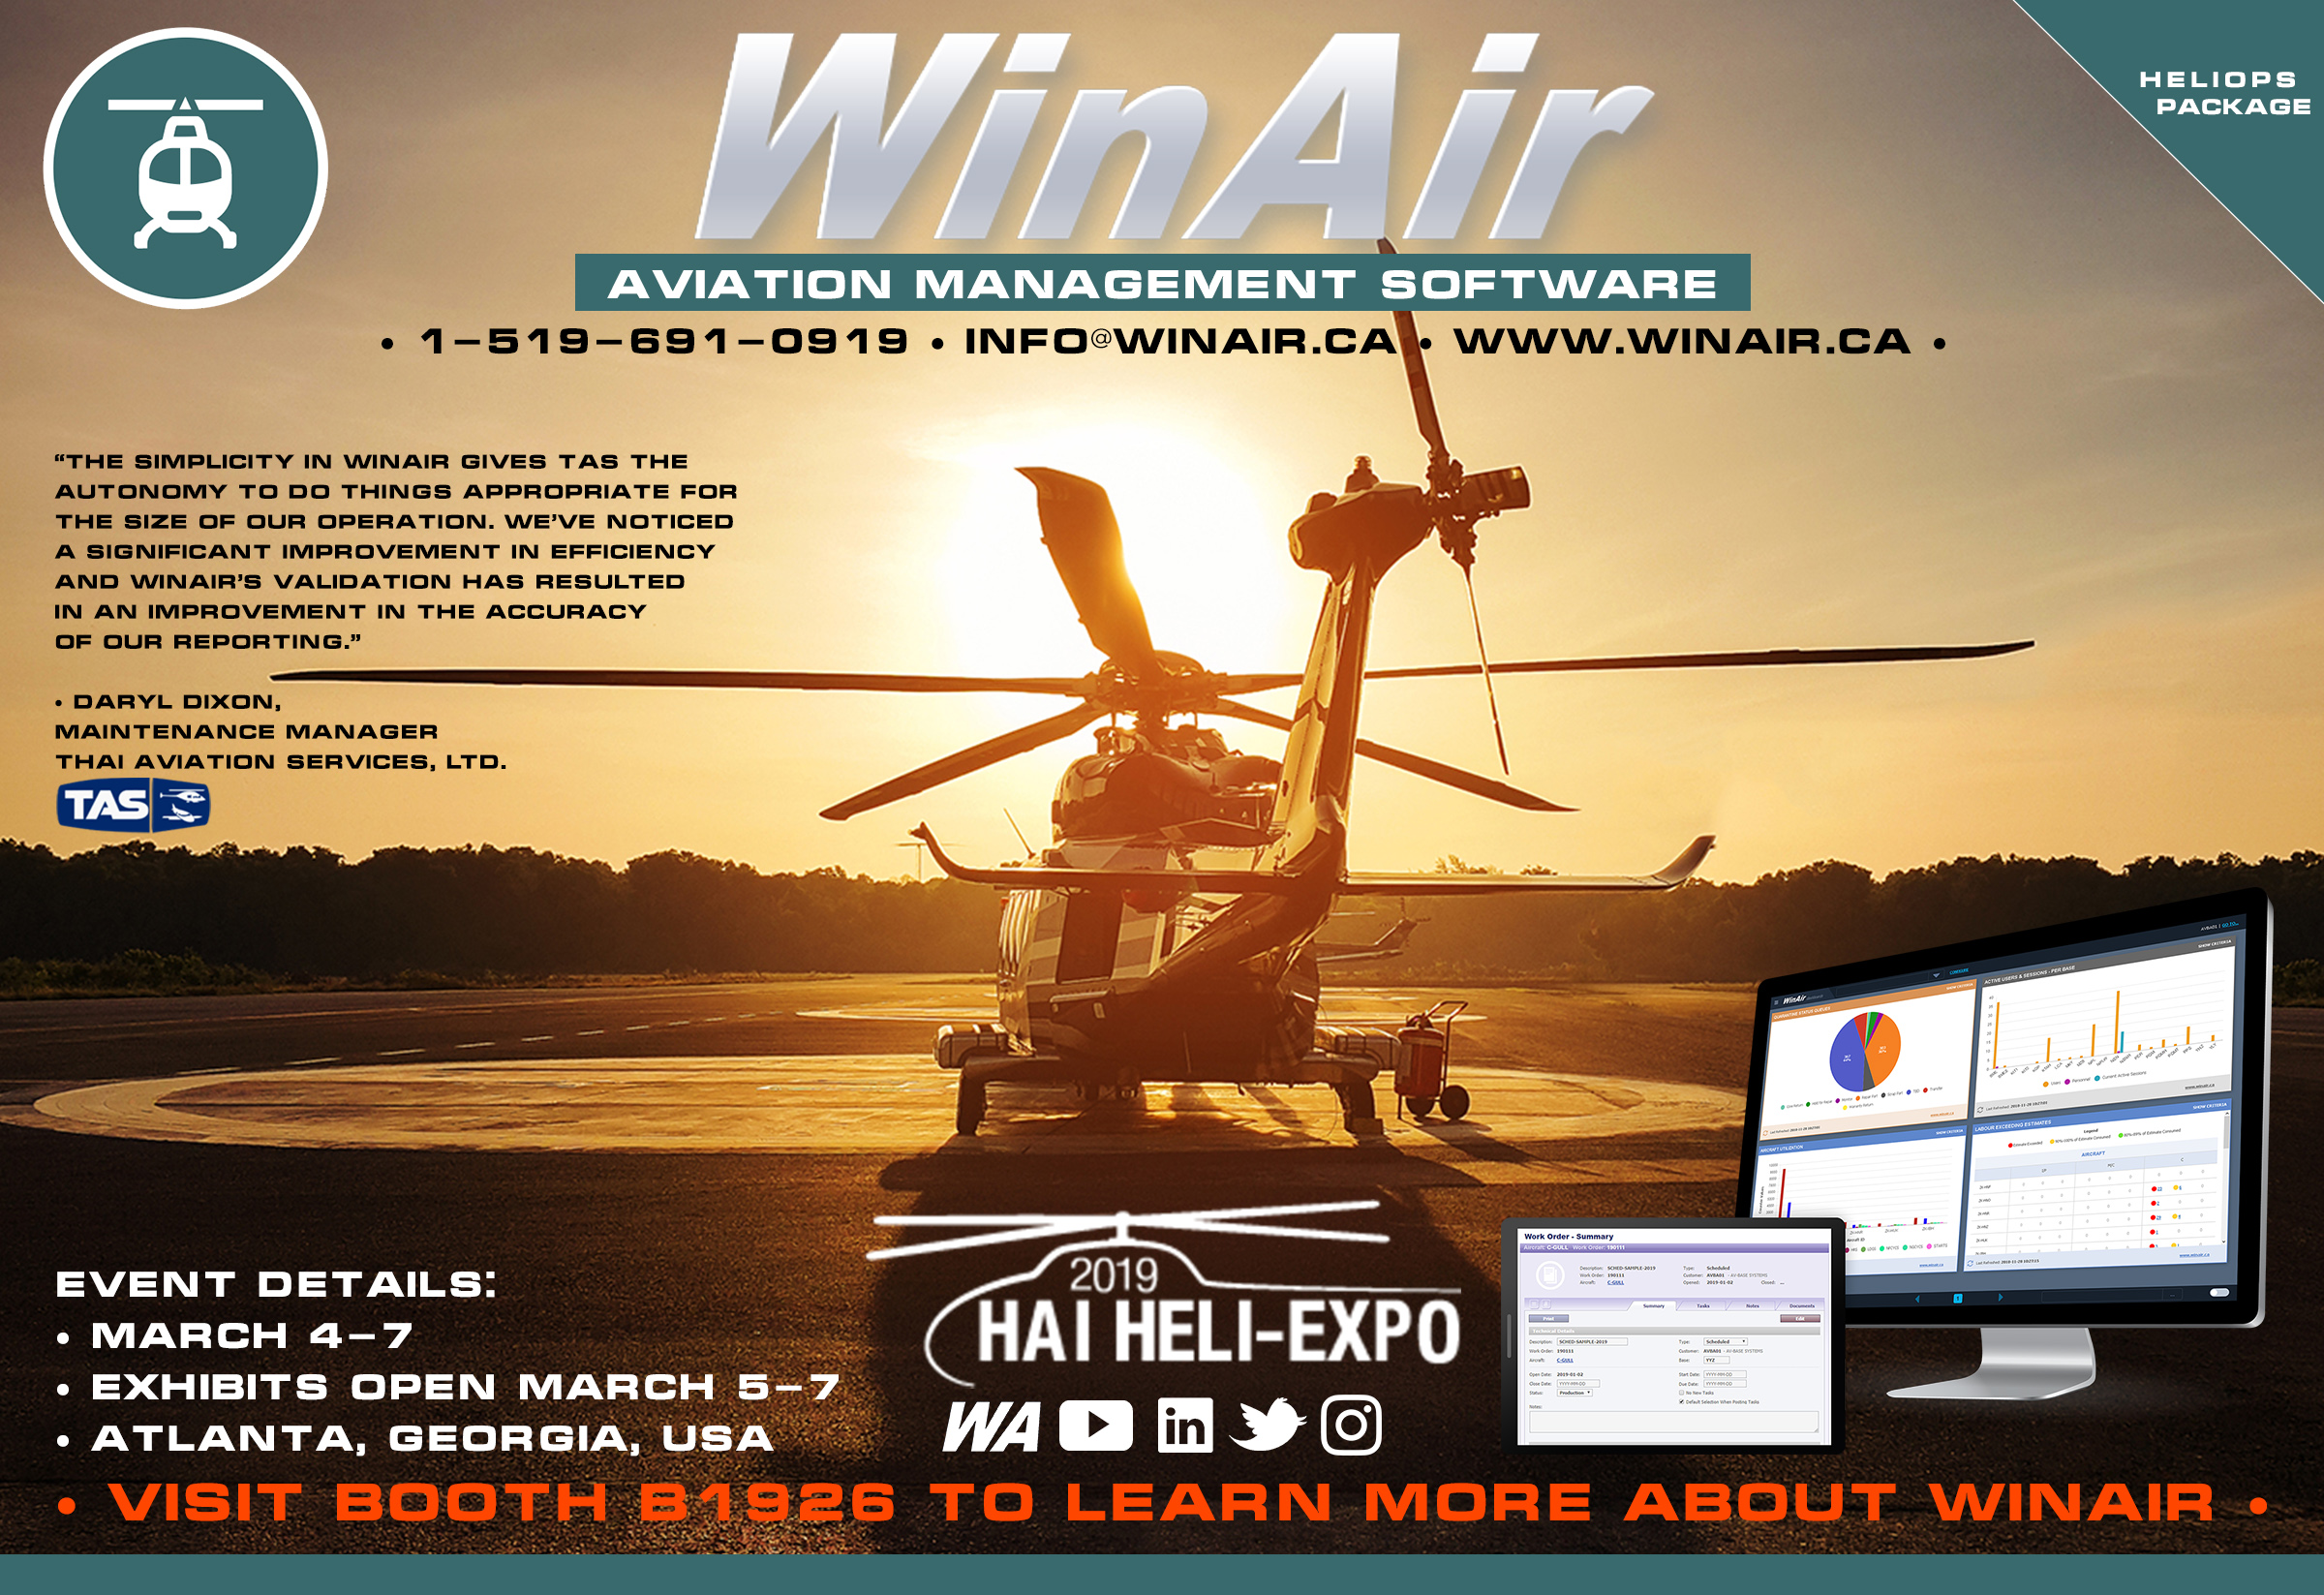 WinAir - Aviation Management Software - HAI HELI-EXPO 2019 - Booth B1926 - with Thai Aviation Services quote